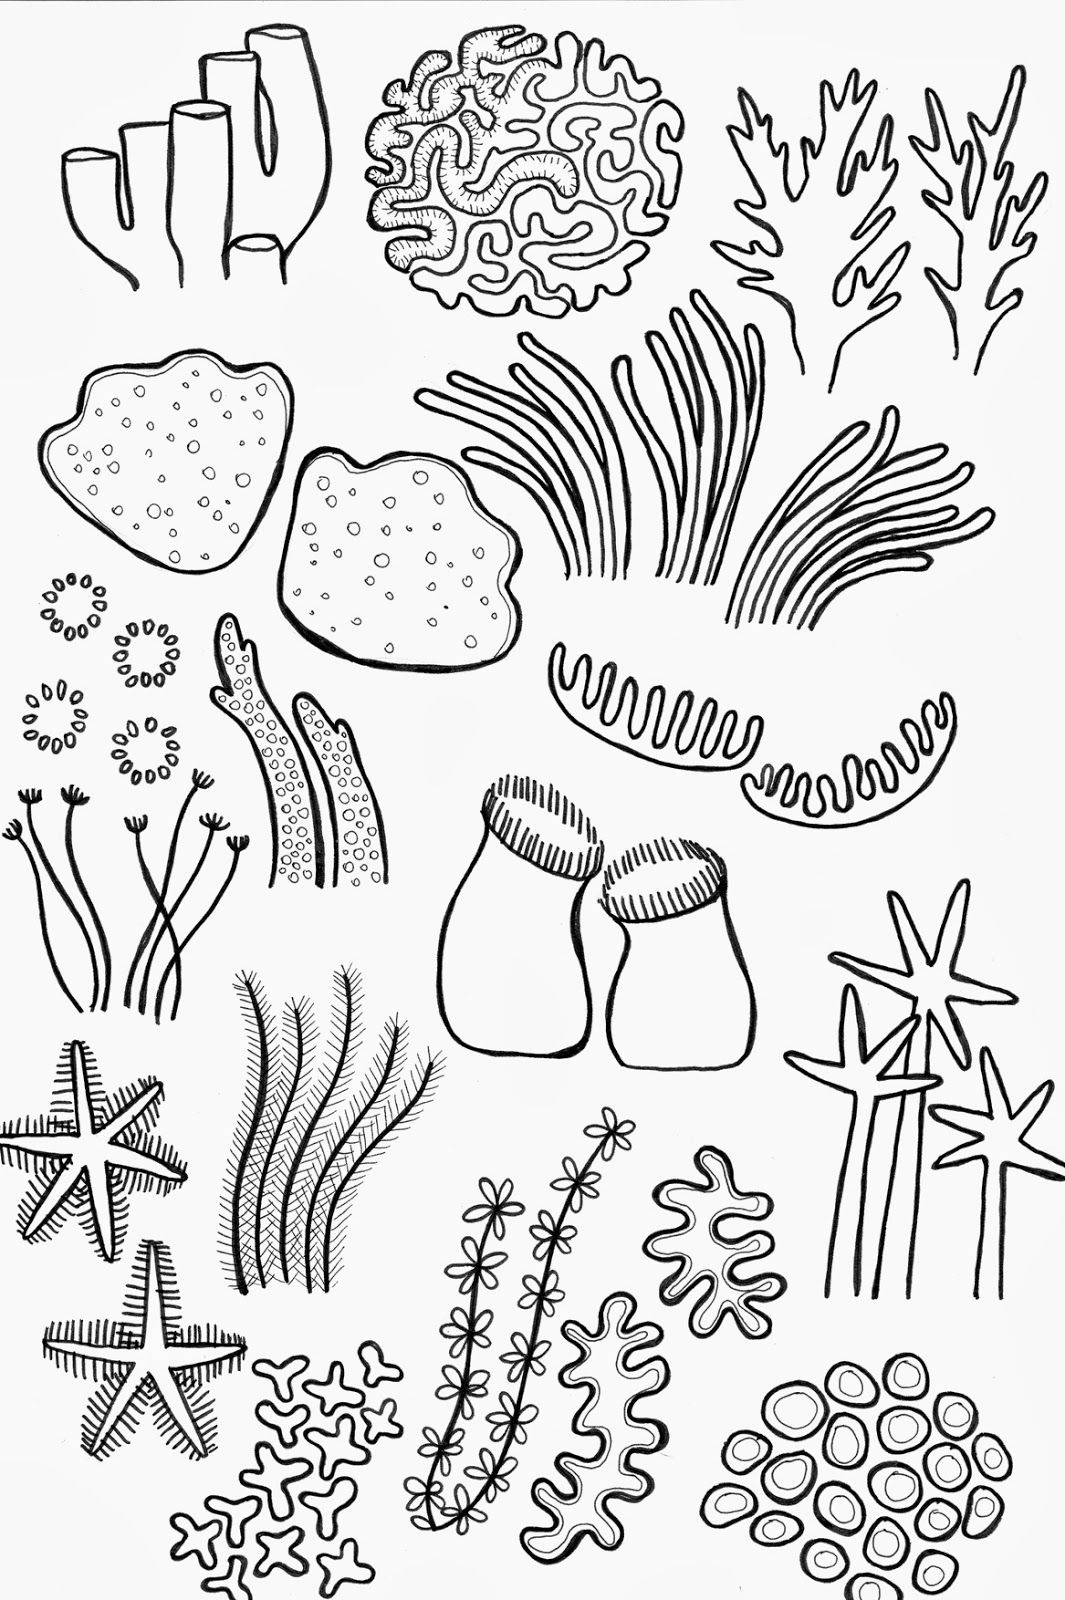 Great Barrier Reef Coloring Pages Bing Images Aquatic Life In Coral Reef Coloring Pages Free En Ocean Coloring Pages Coral Reef Coloring Pages Coloring Pages